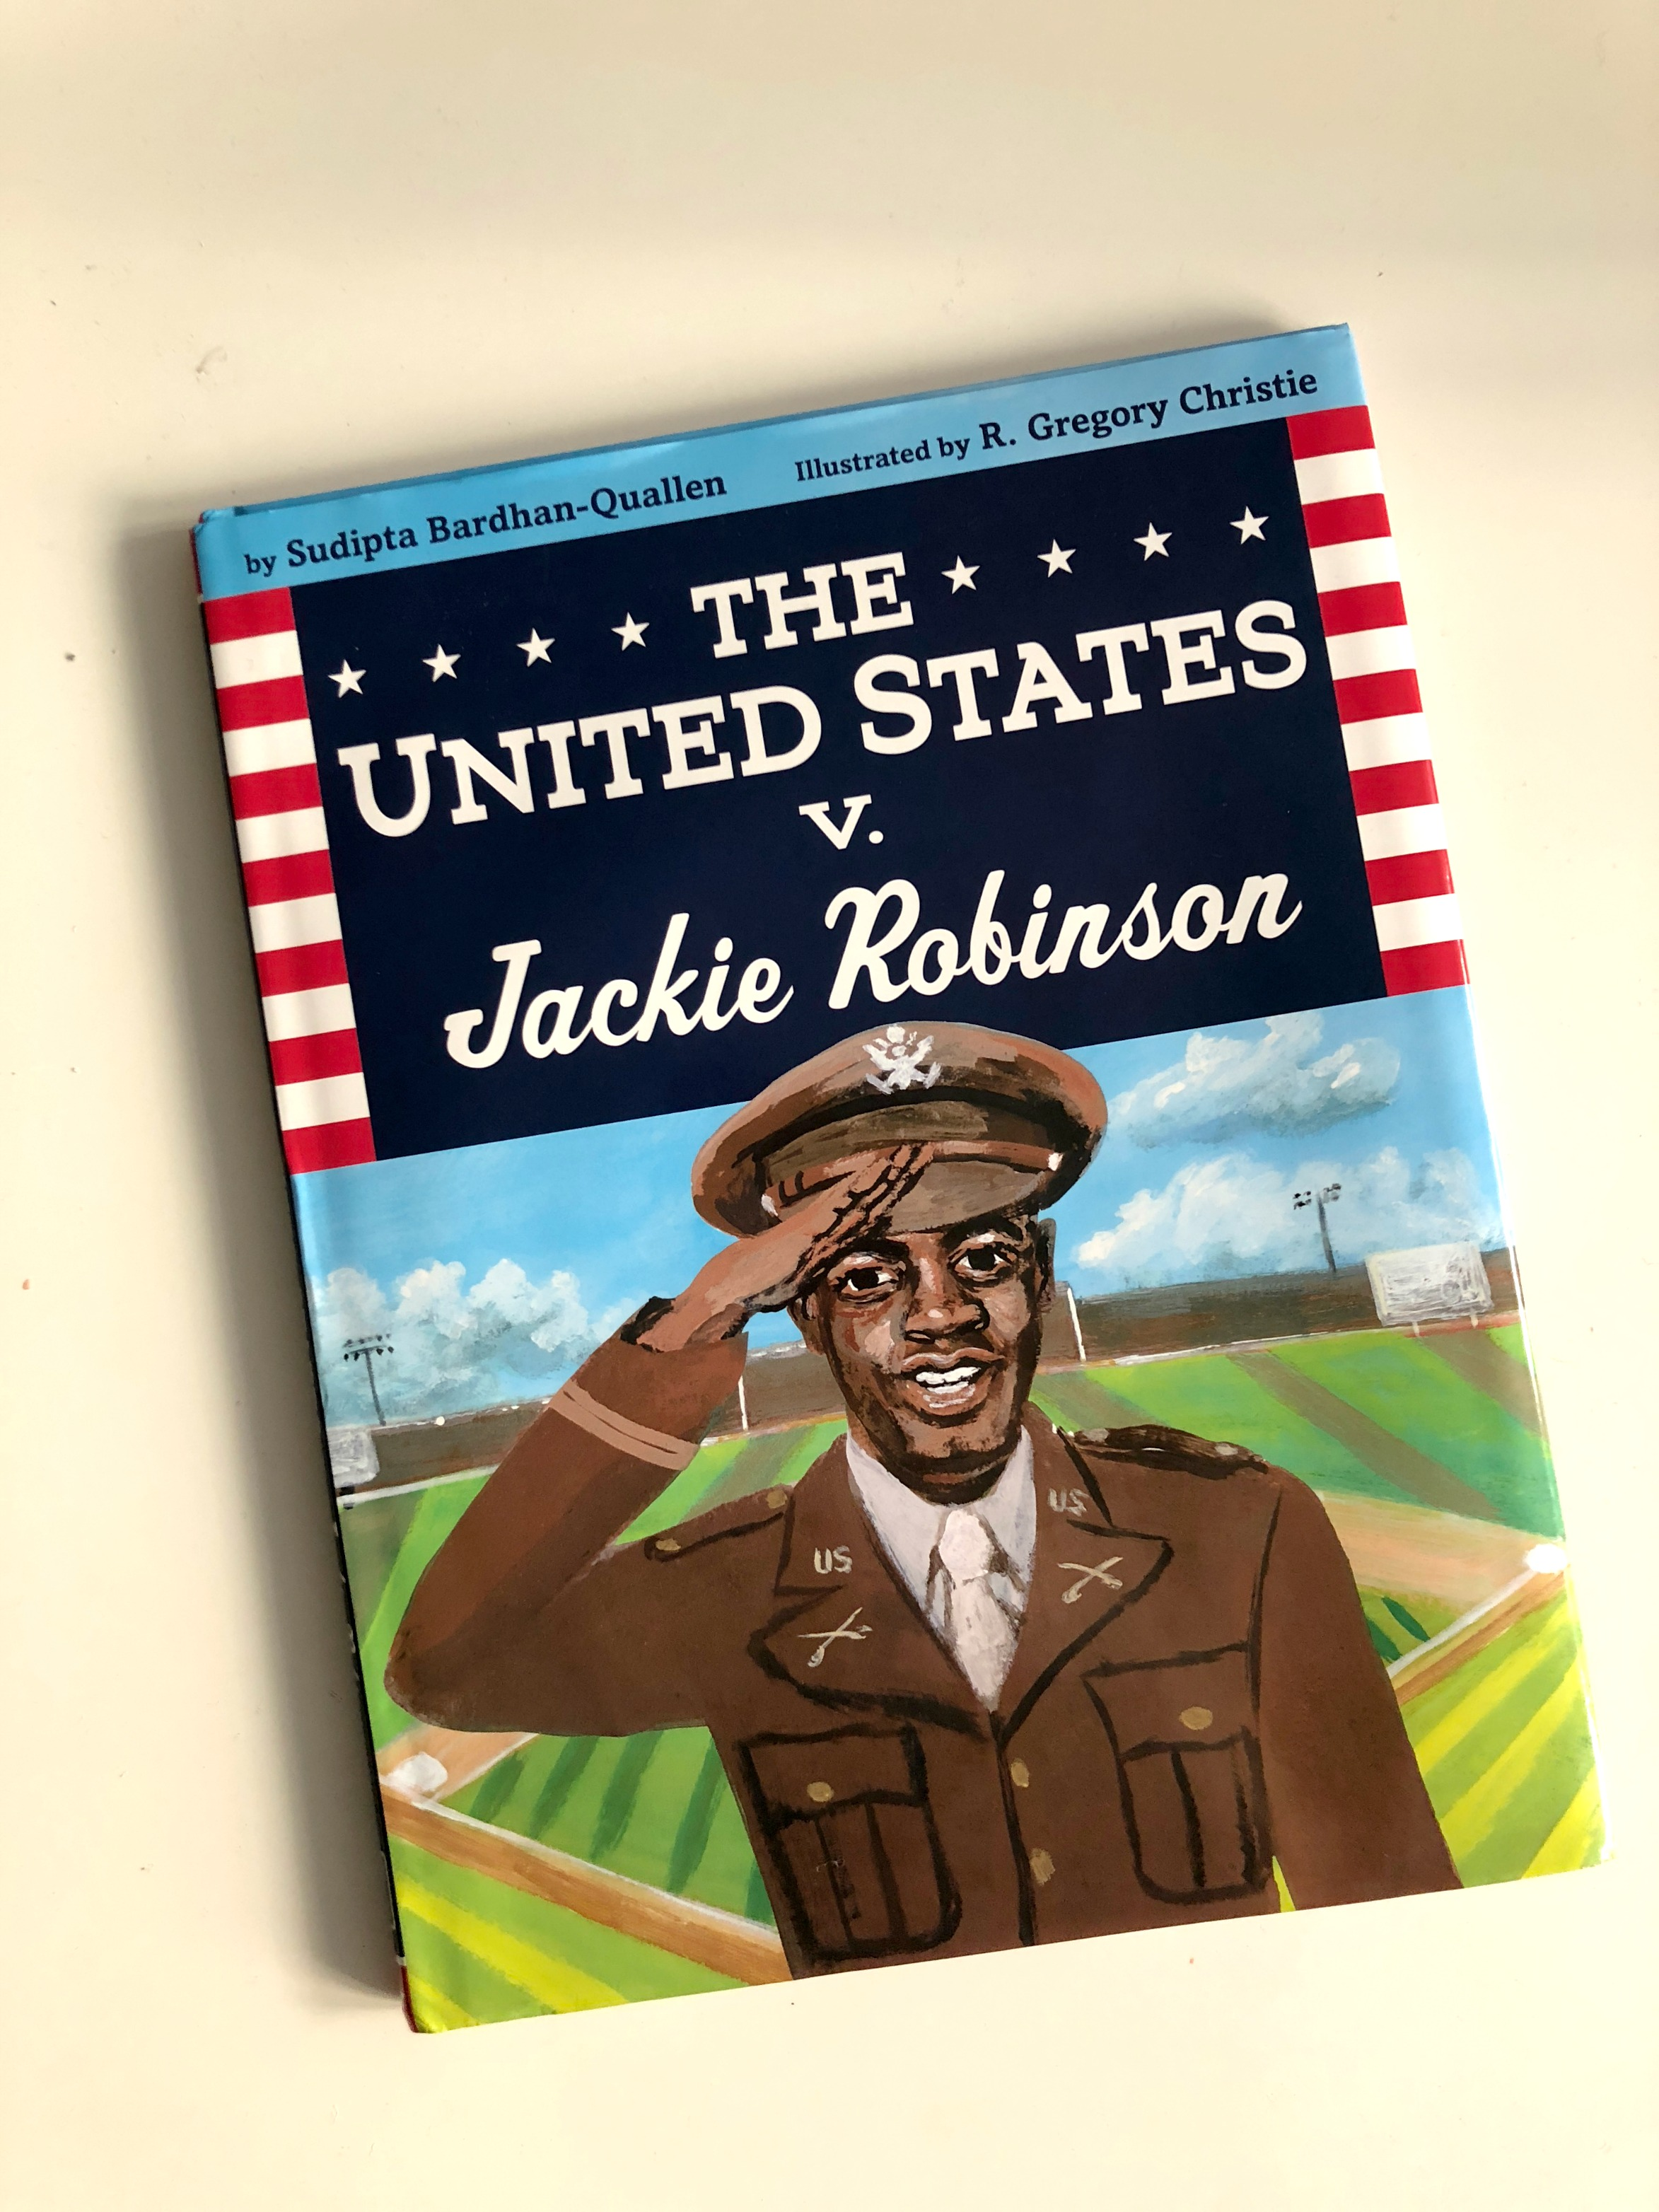 Great new biographical picture books from authors of color: United States V Jackie Robinson by Sudipta Bardhan-Quallen and R. Gregory Christine